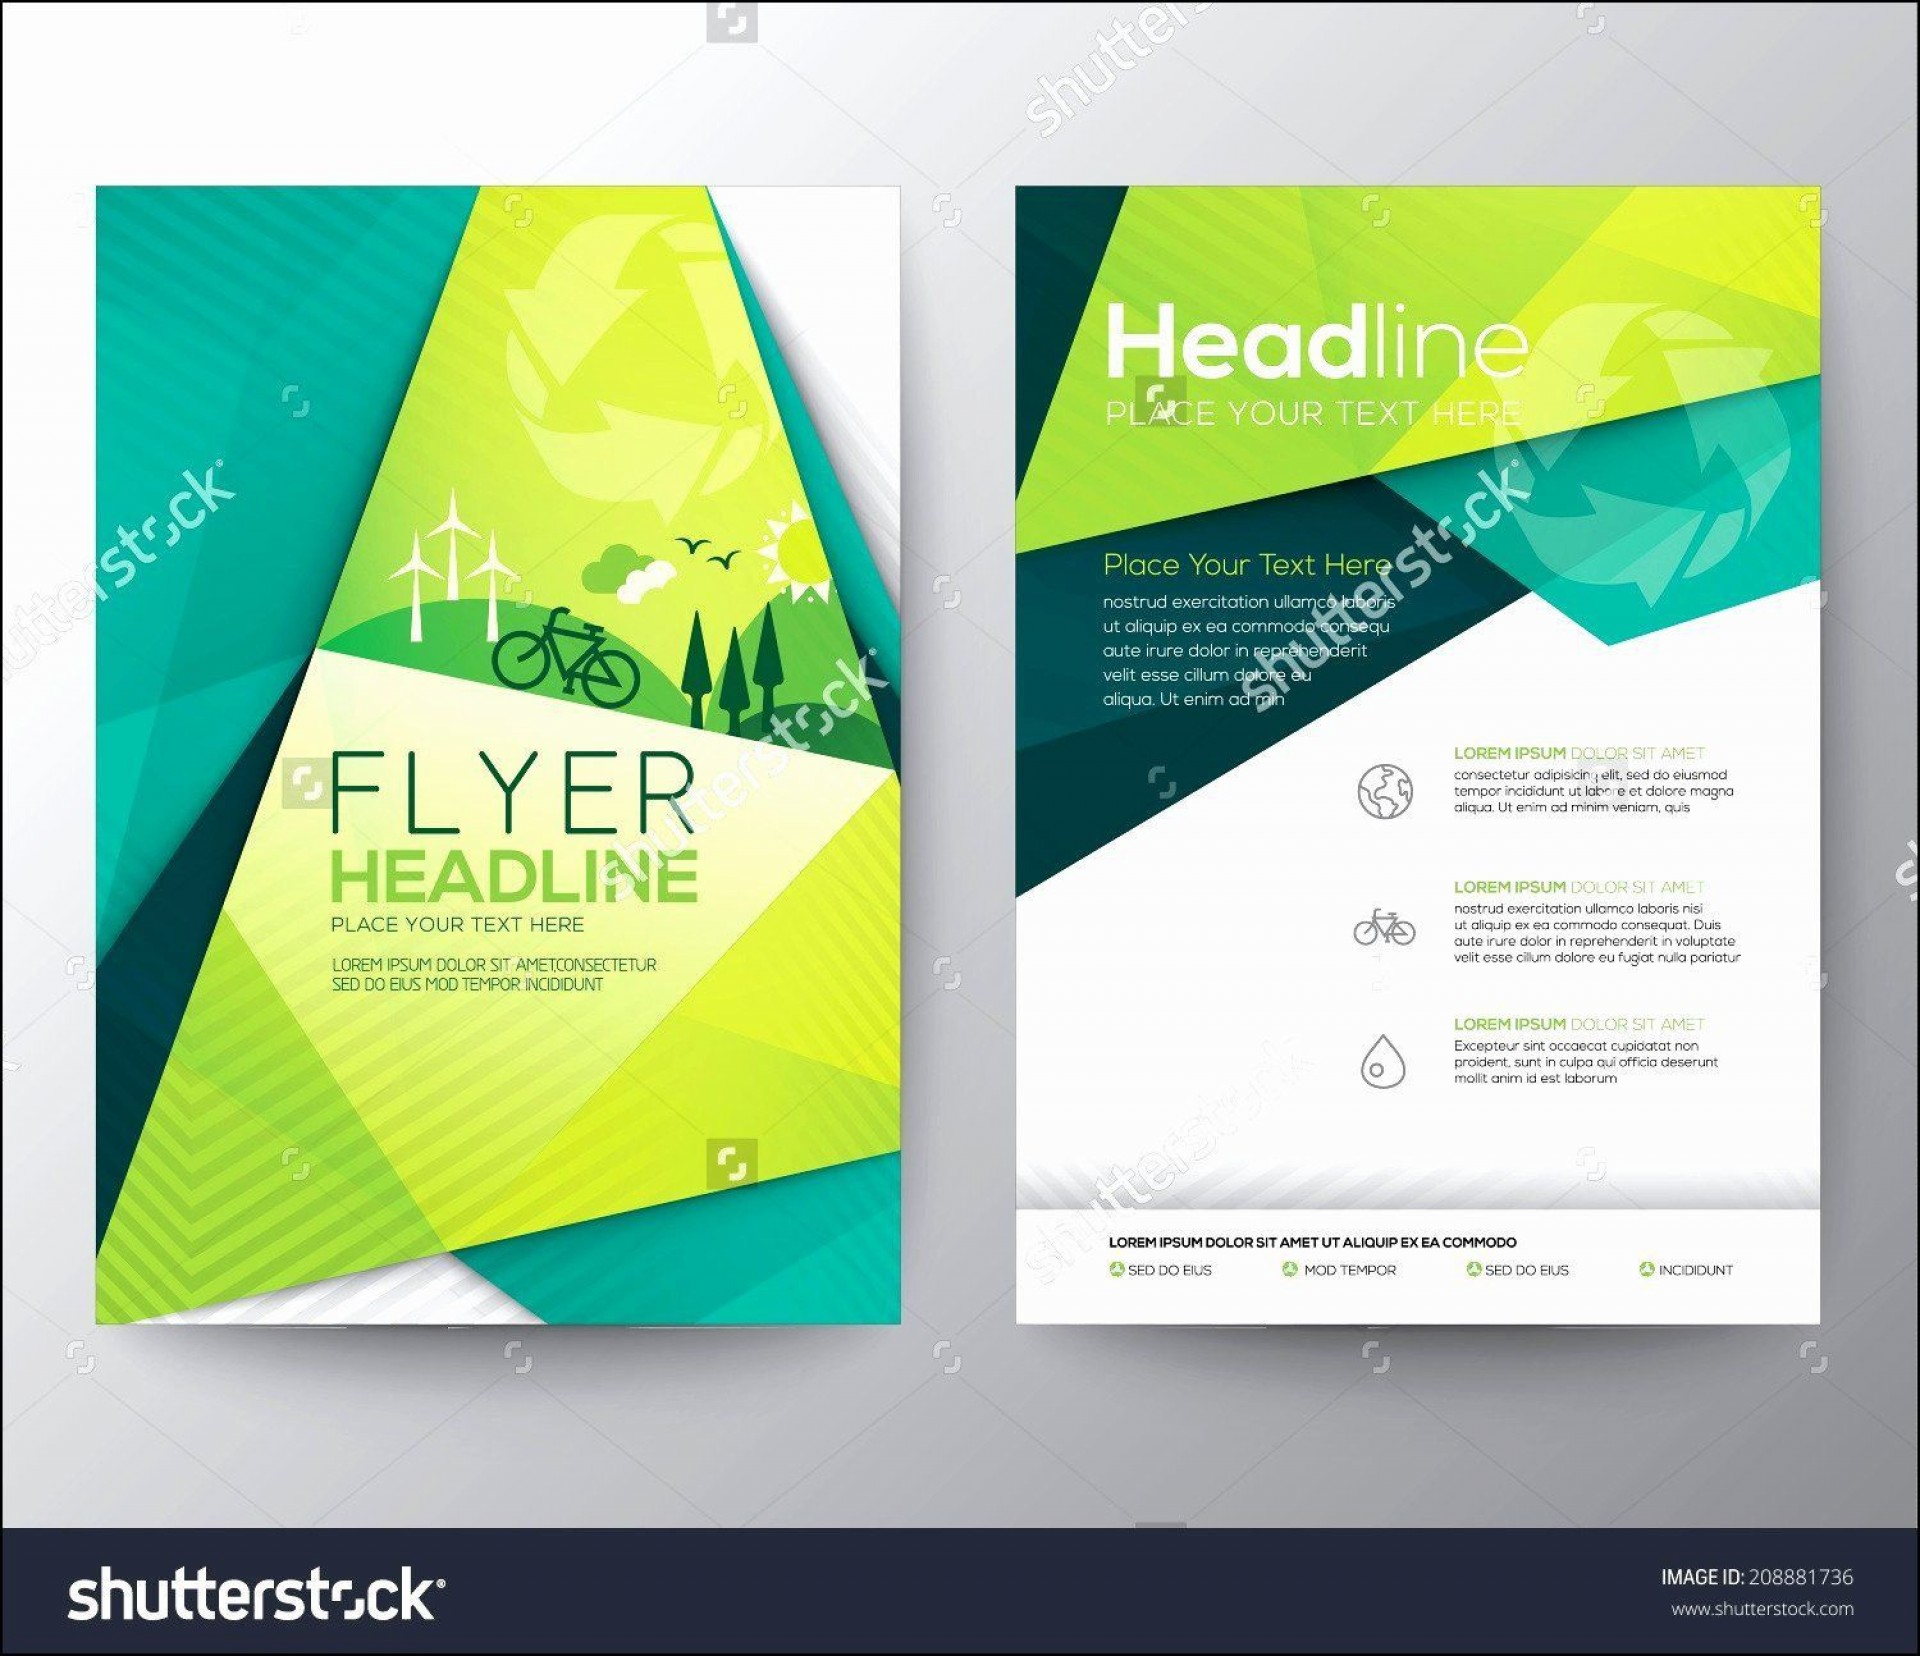 000 Exceptional Brochure Design Template Psd Free Download Picture  Hotel1920